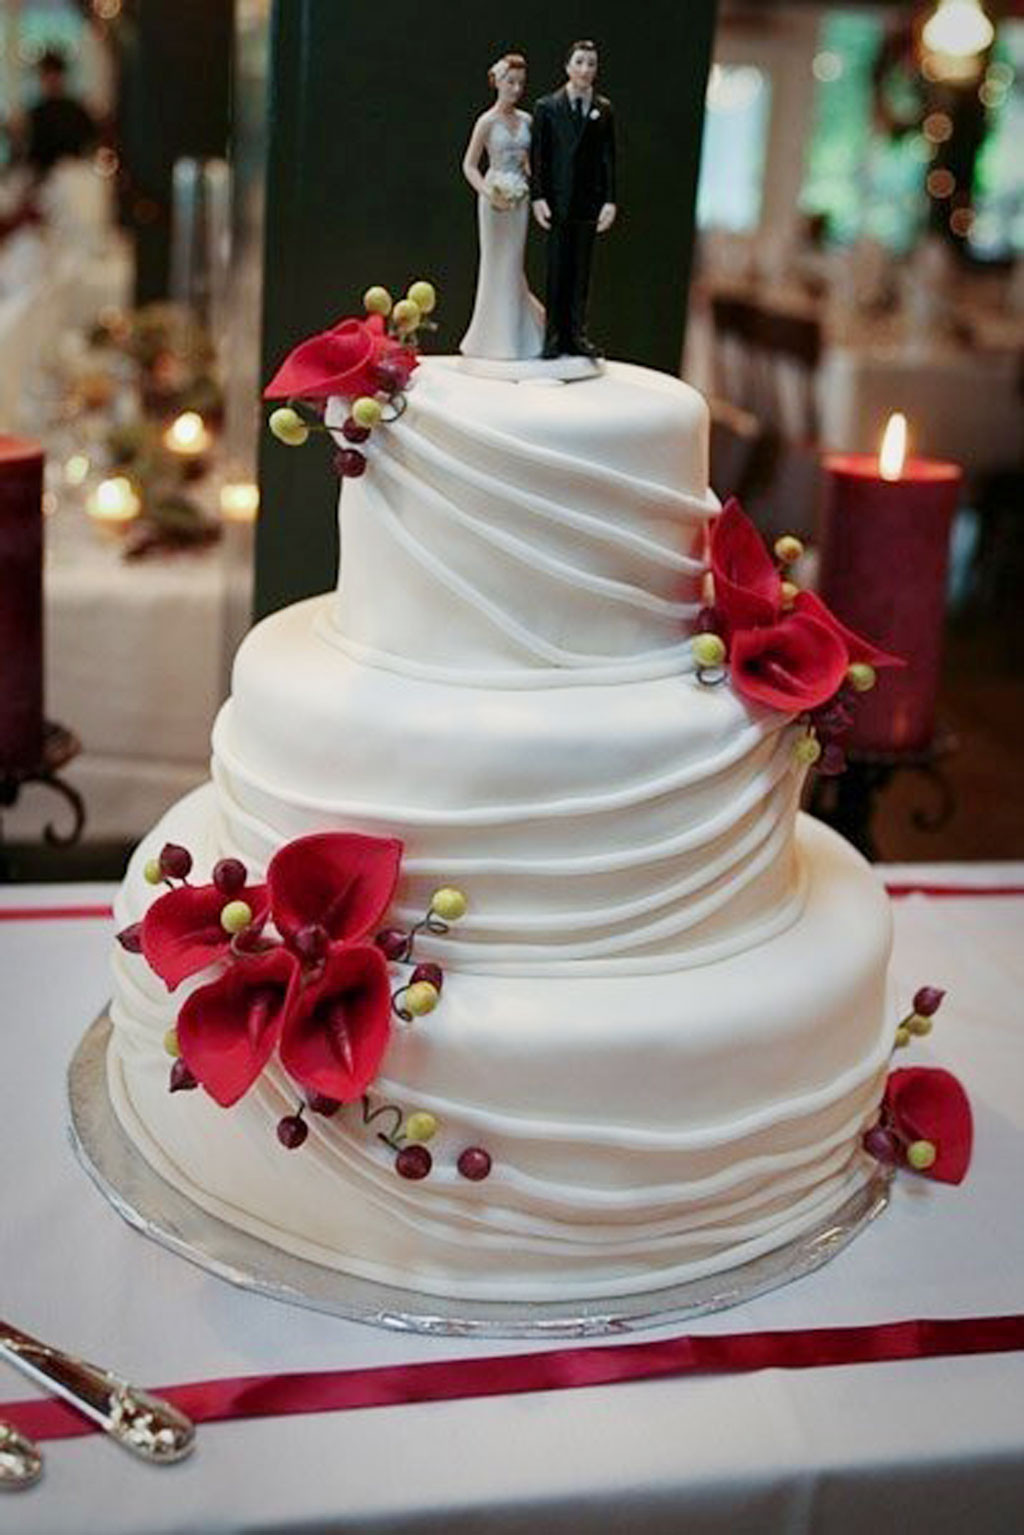 Cakes Design For Wedding  Red Calla Lily Wedding Cake Design 2 Wedding Cake Cake